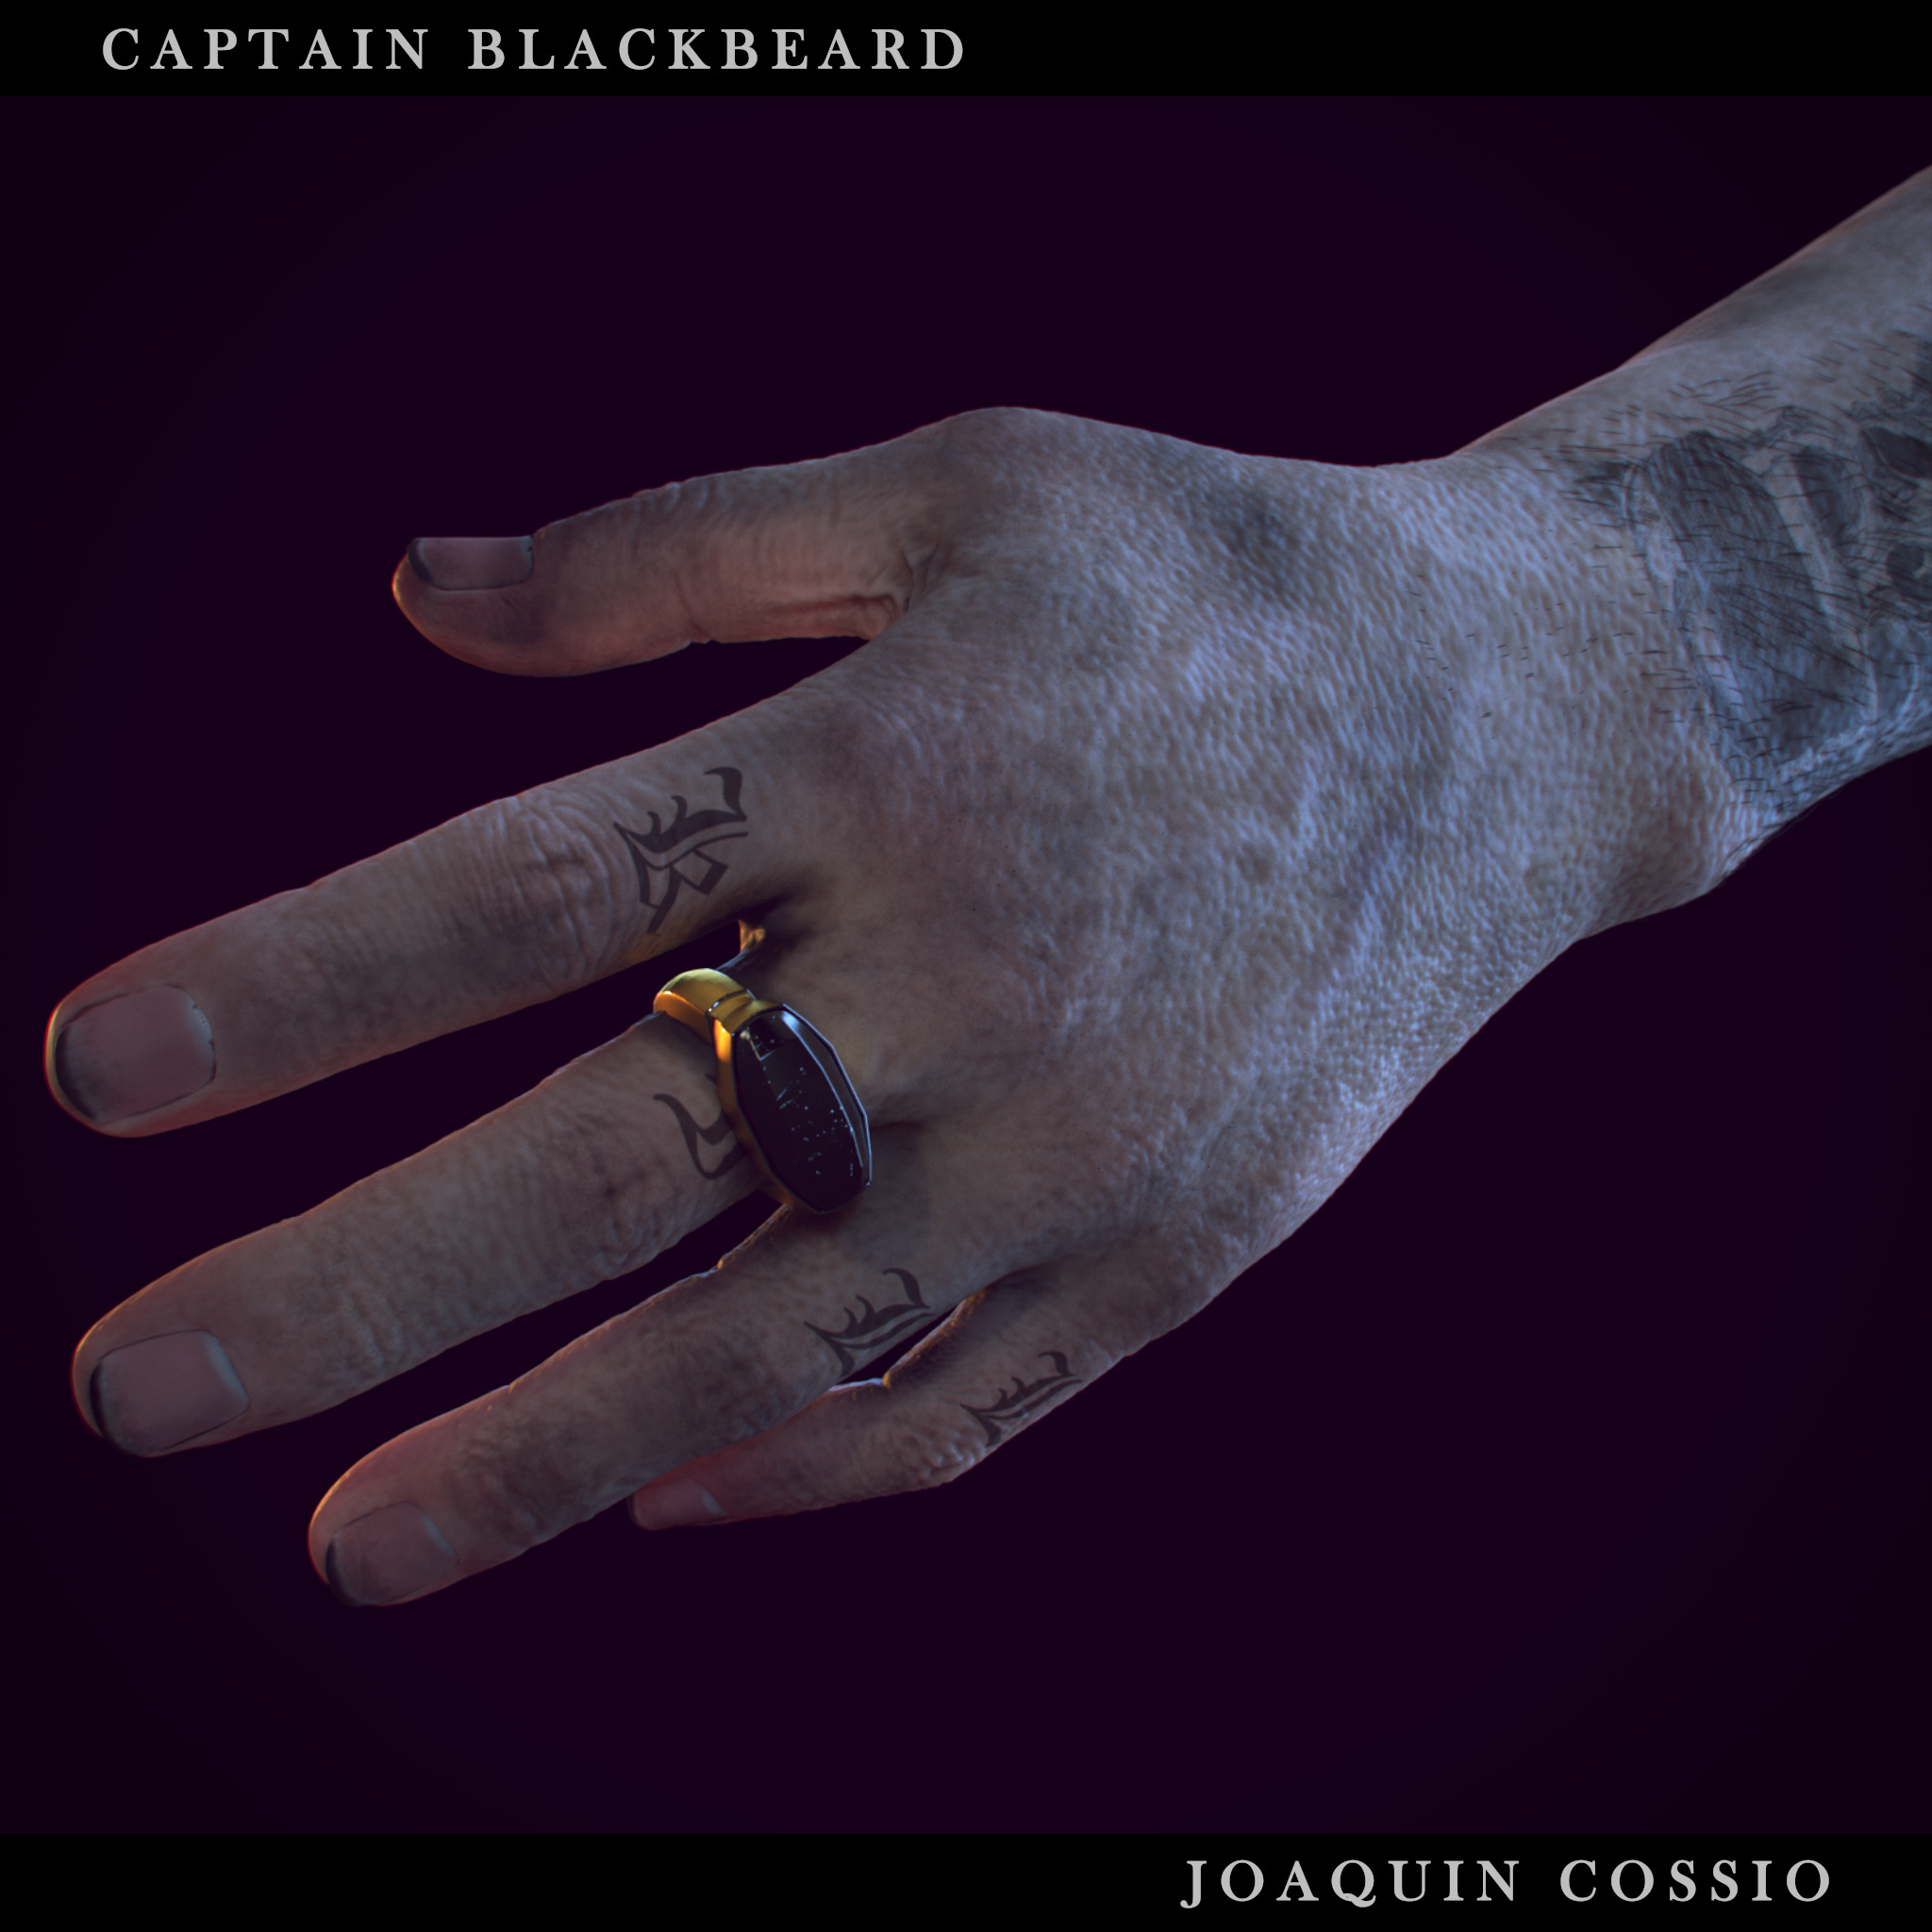 Blackbead_breakdown_hand_by jcossio.jpg